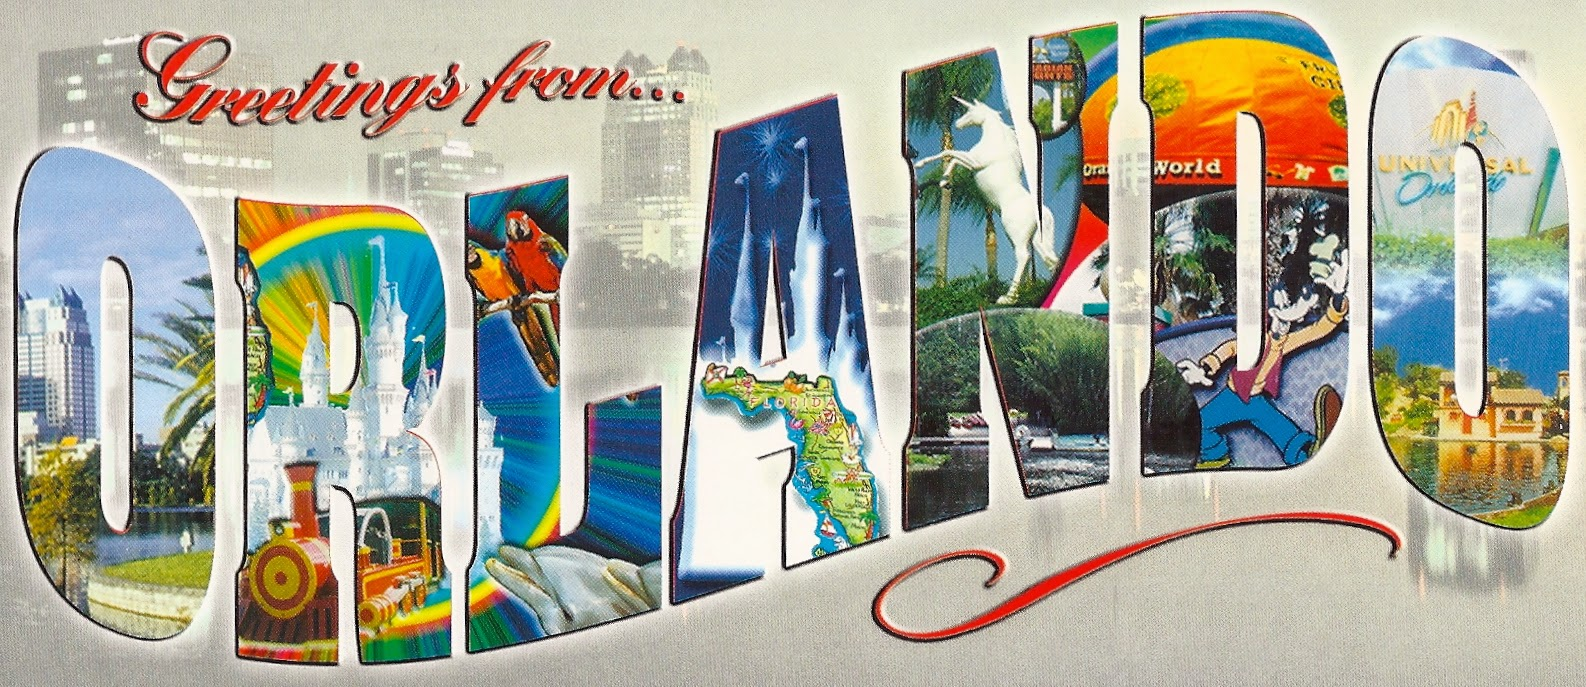 My favorite views florida orlando greetings from large letter greetings from orlando florida kristyandbryce Image collections